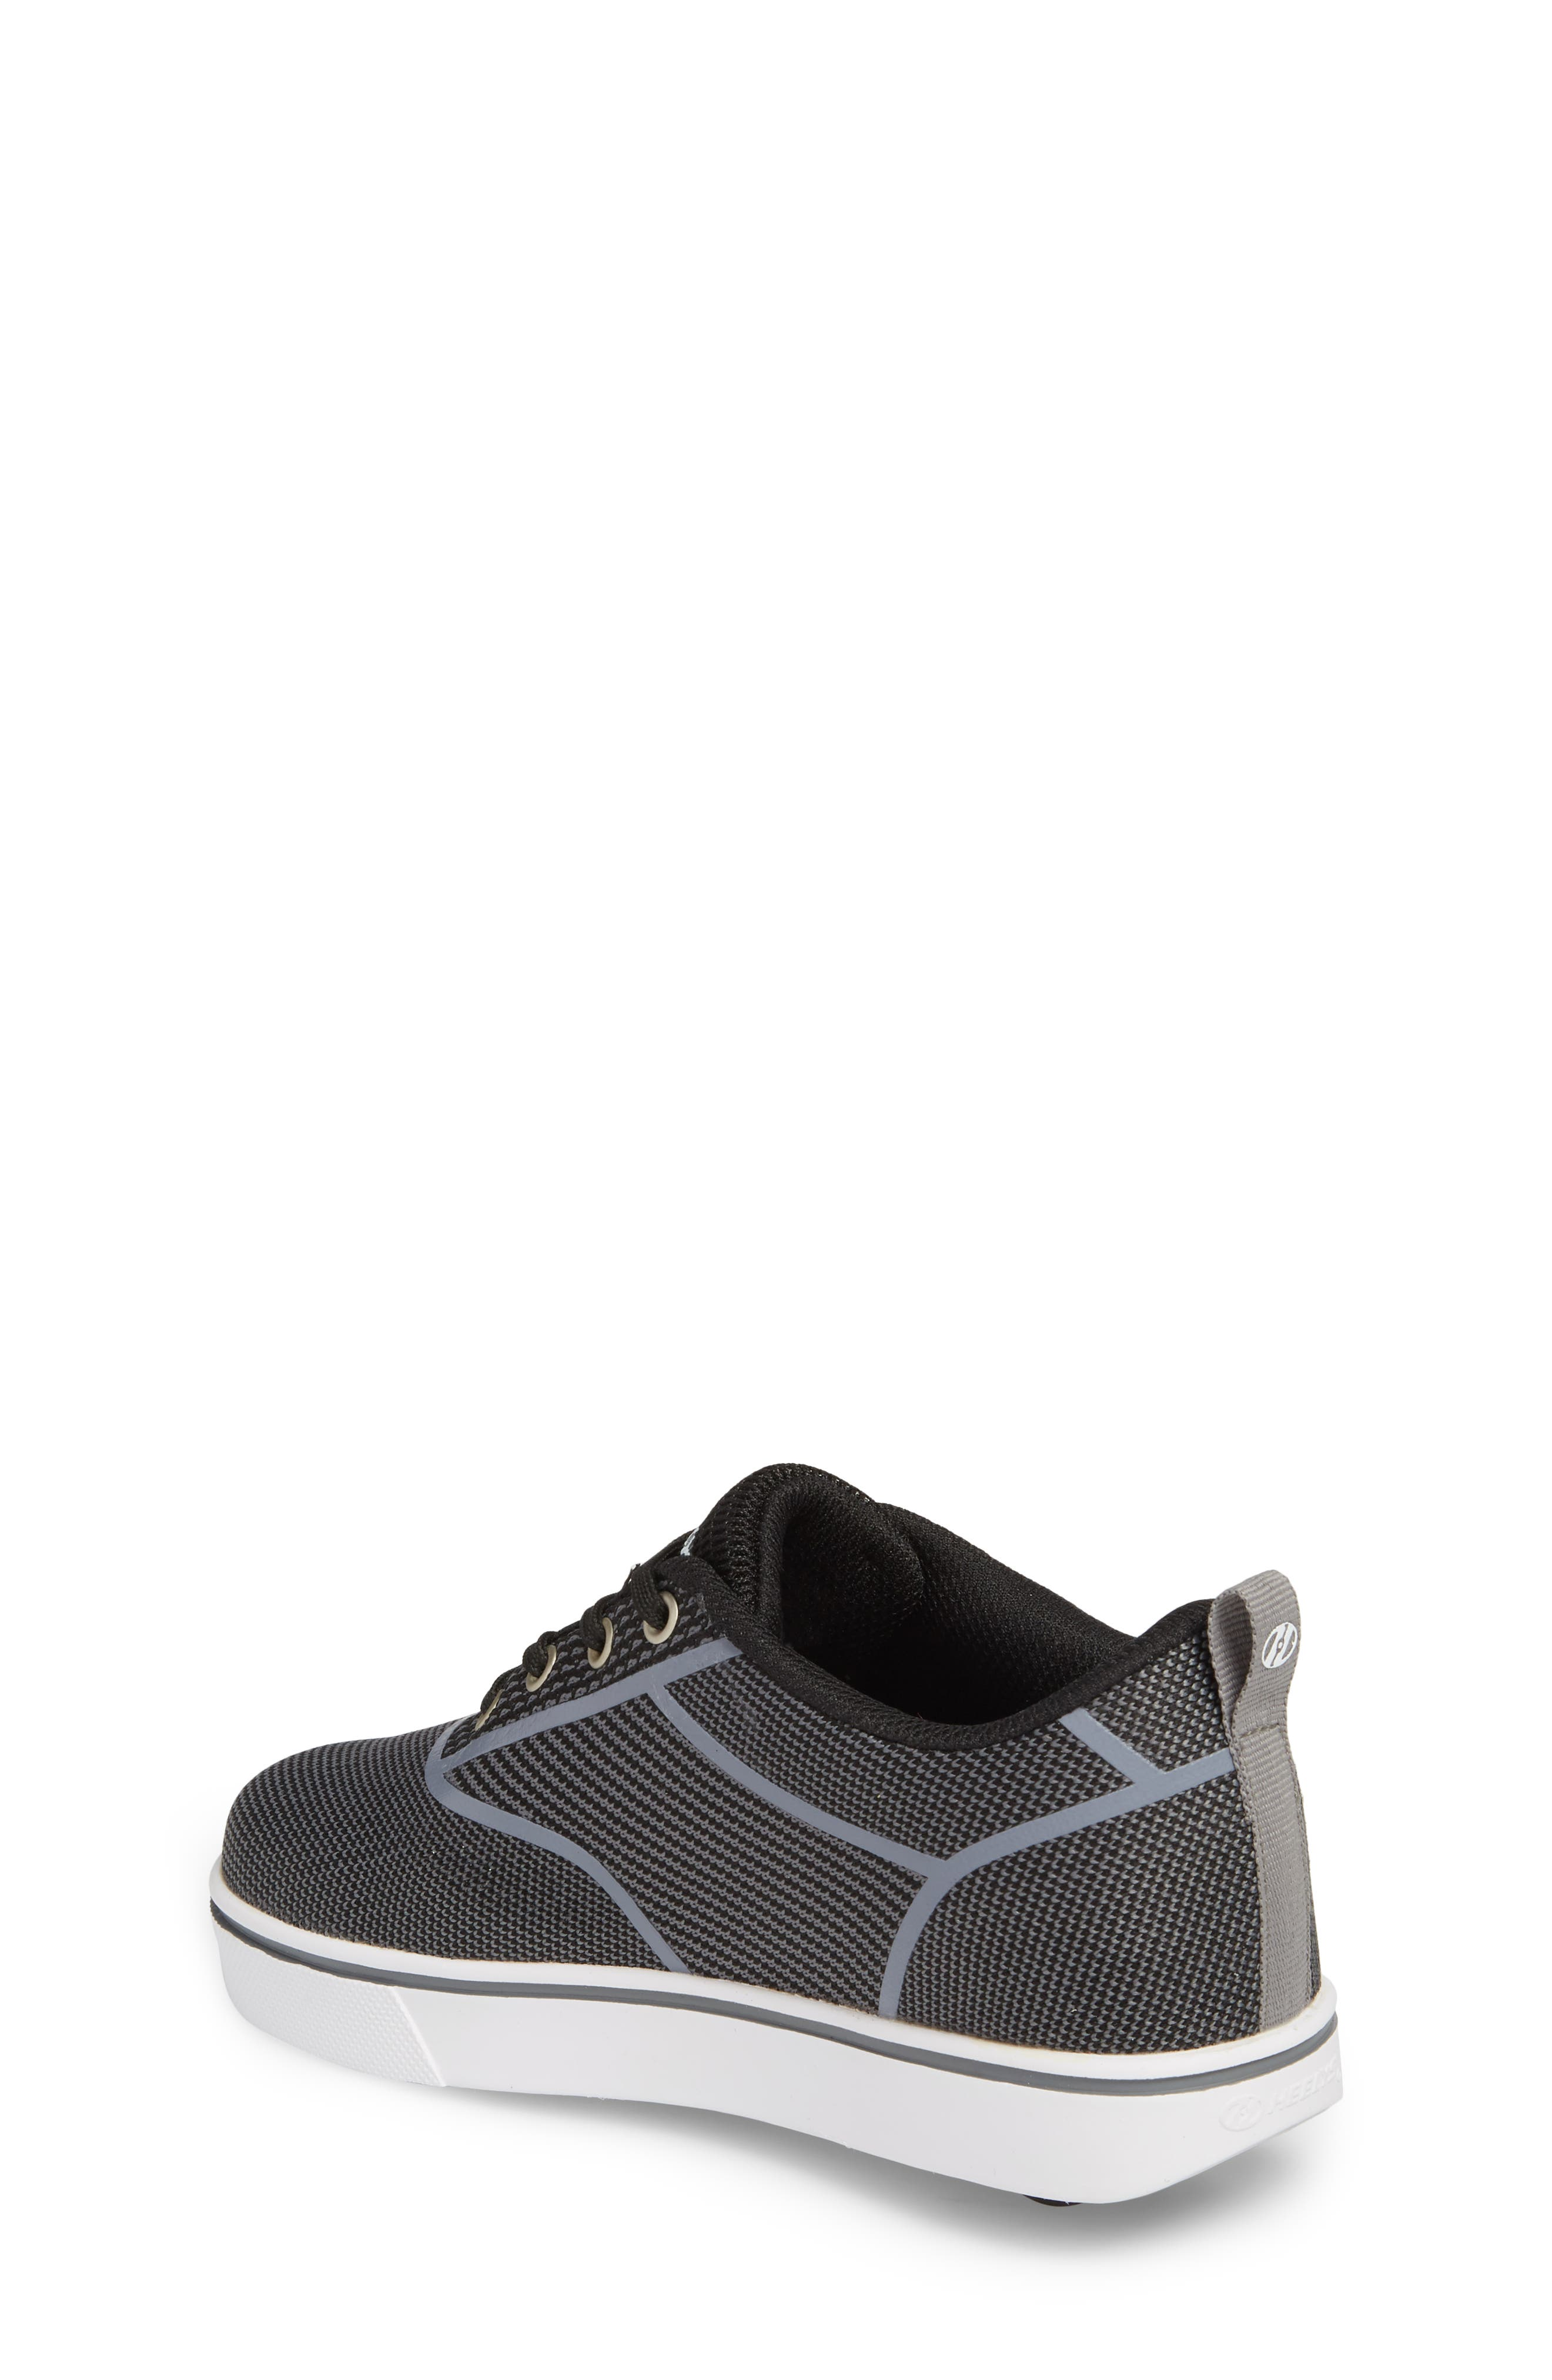 Launch Knit Sneaker,                             Alternate thumbnail 2, color,                             BLACK/ CHARCOAL